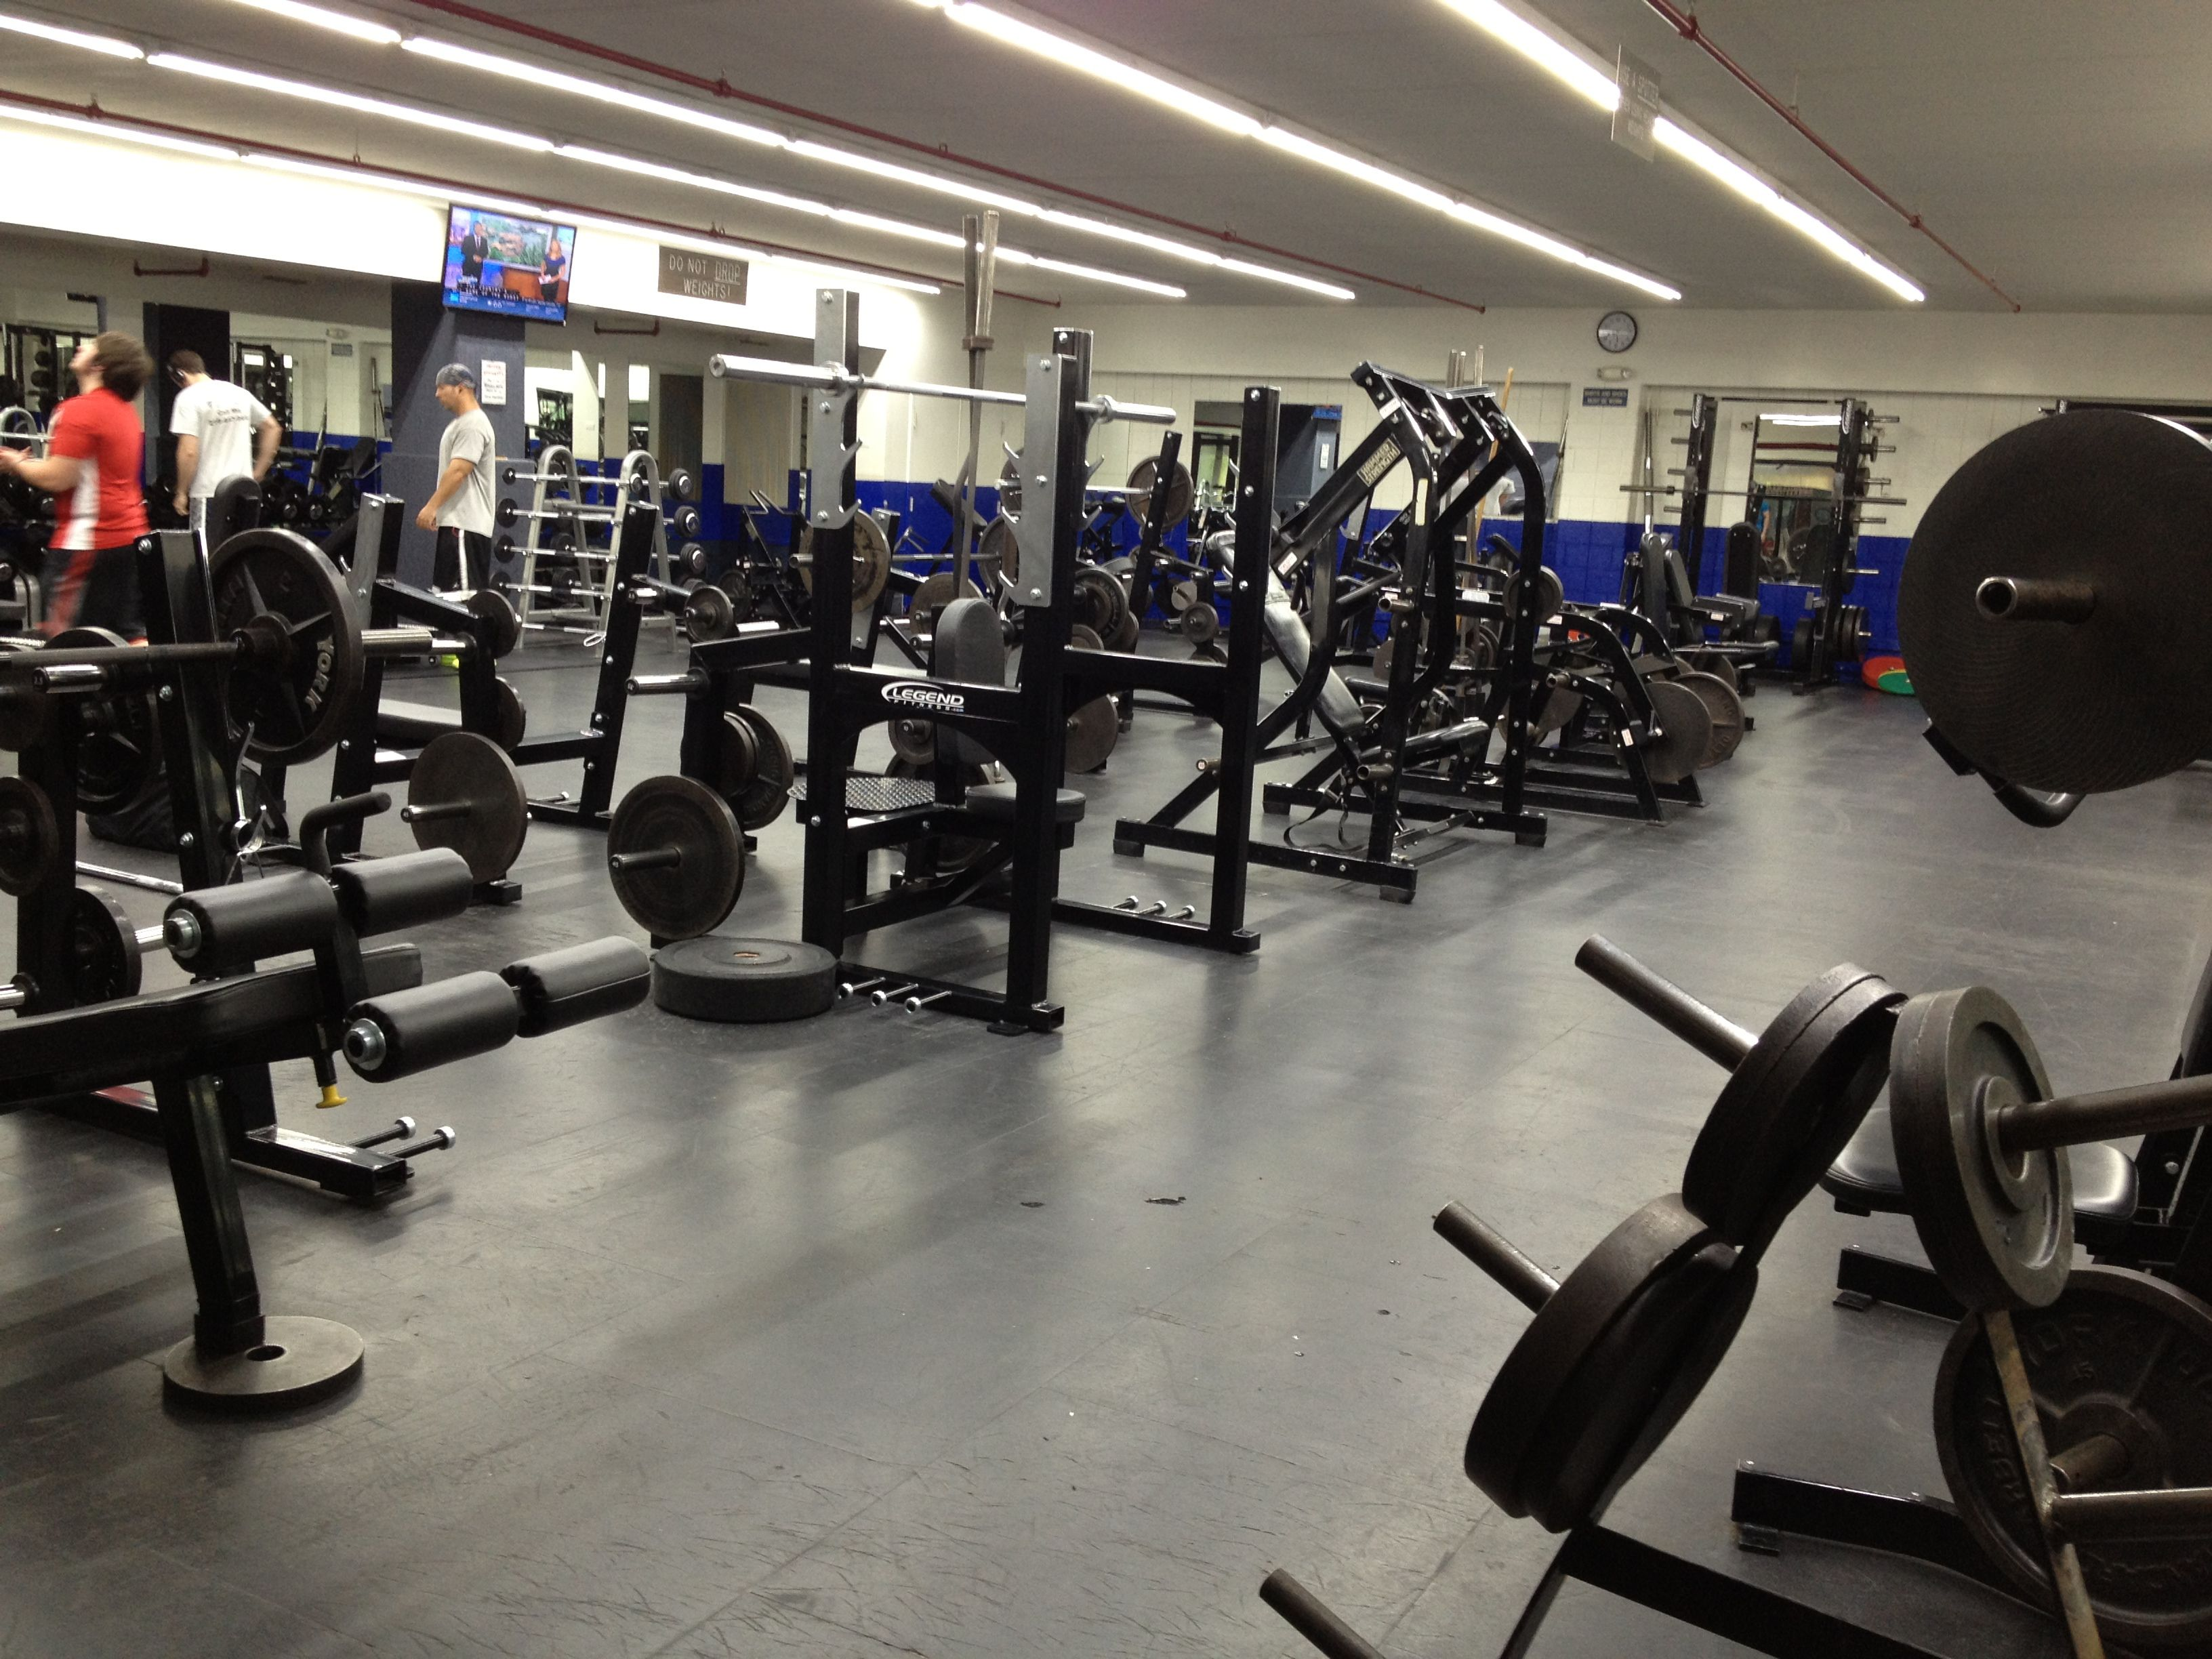 Cfc S Free Weight Room Offers A Full Range Of Equipment Including Dumbbells Barbells Racks Benches And More Fitness Club Free Weight Workout Session